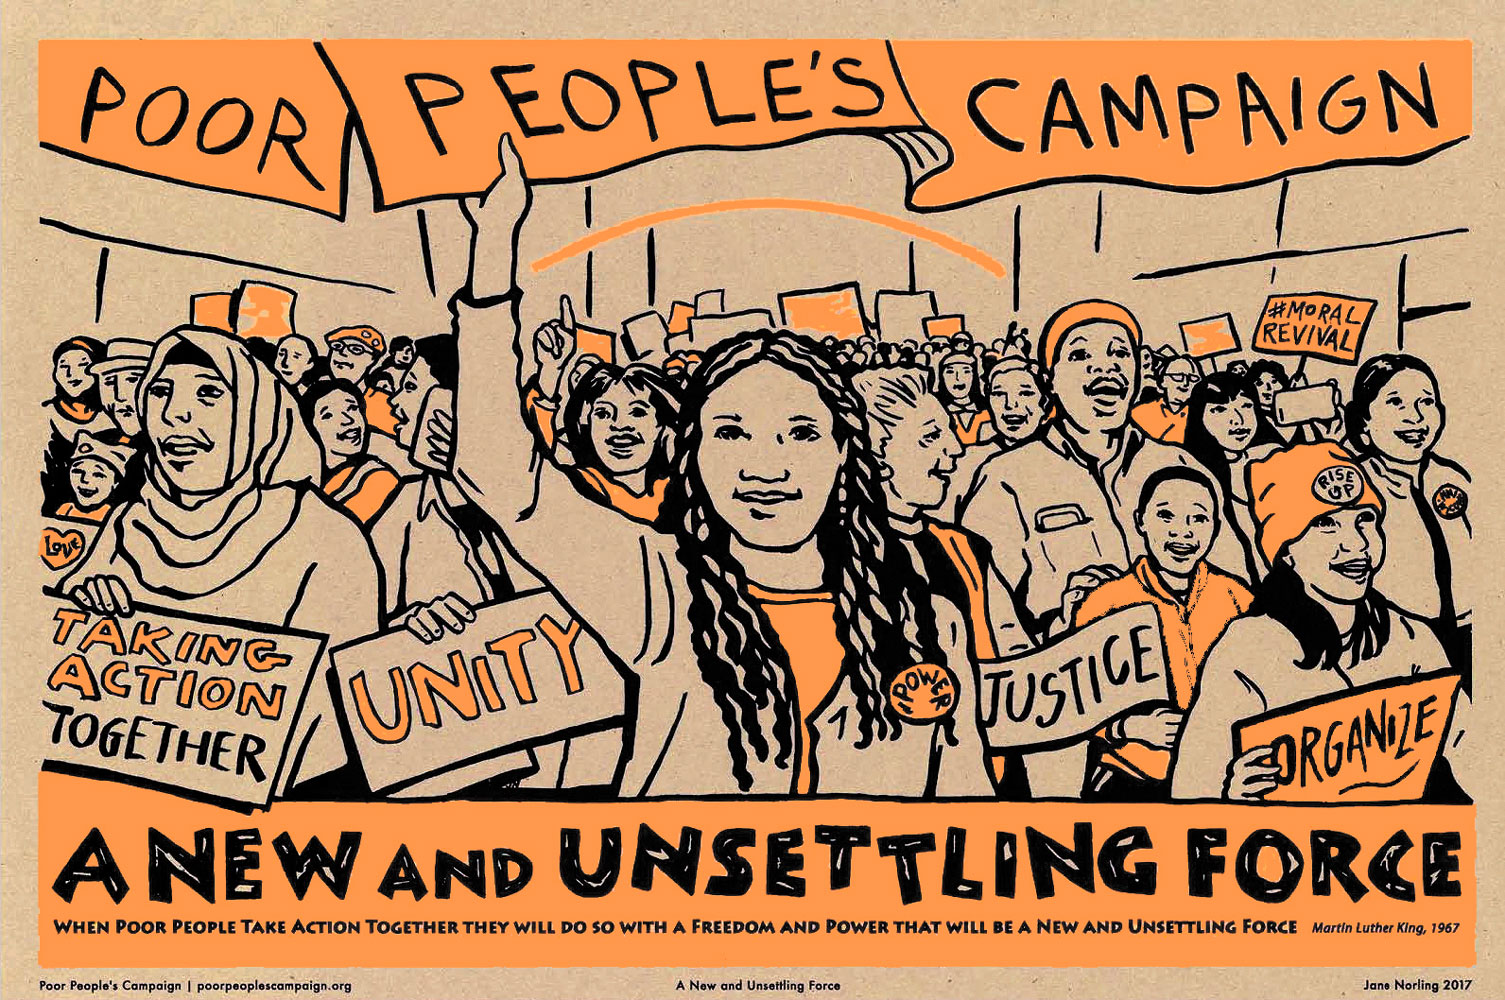 """A New and Unsettling Force , screenprint, 12""""x18"""", 2017.  Published by Justseeds for Poor People's Campaign, 2018. Part of 25-poster popular eduzation portfolio for Campaign activists/ organizers to use during regional/local teach-ins prepping for 40 Days of Moral Action, beginning Mother's Day, May 2018."""